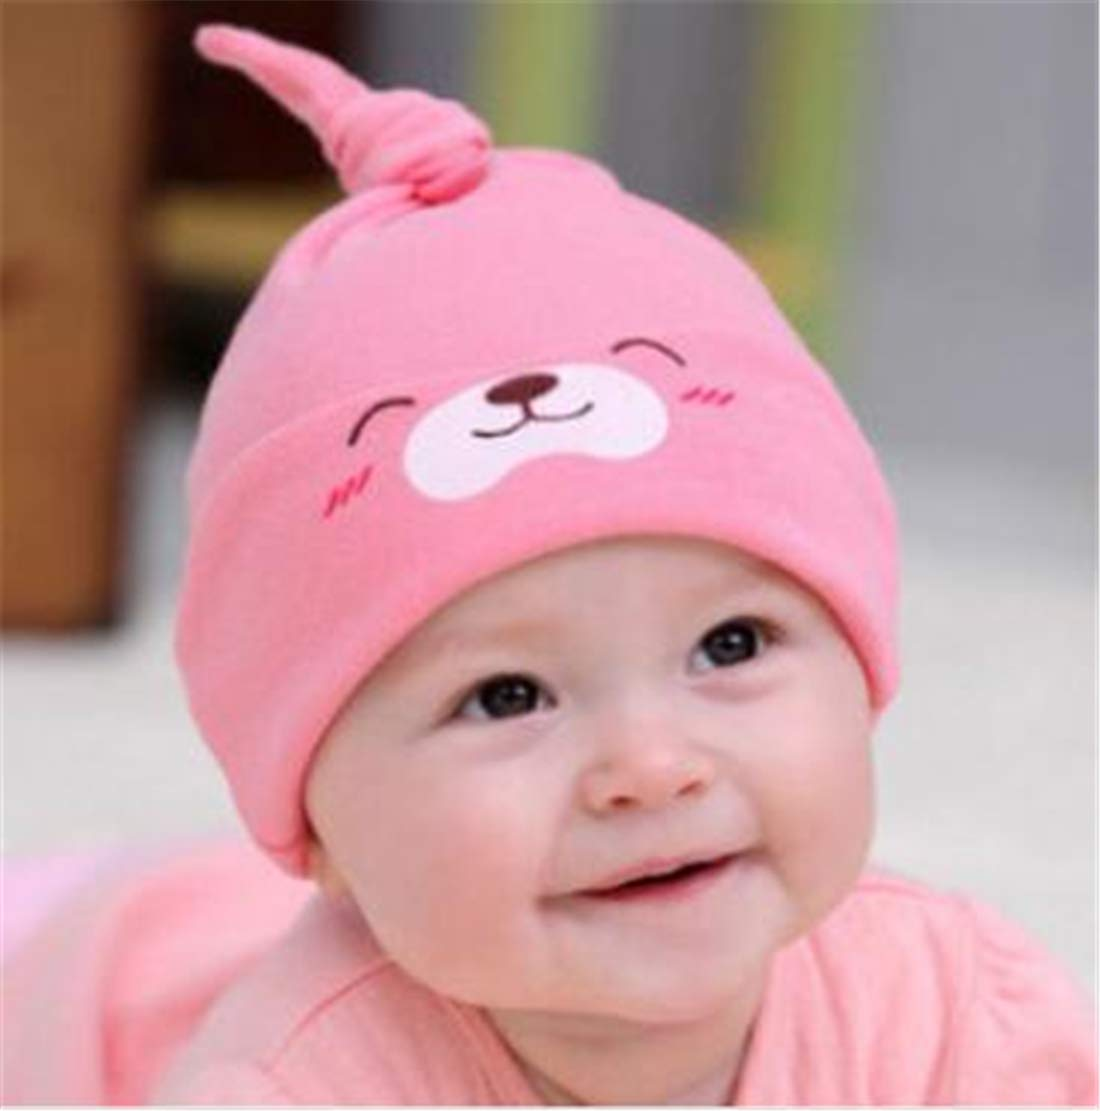 Tmrow 1PC Baby Fashion Hedging Hat Autumn/Winter Knitted Cap For Kids,Yellow